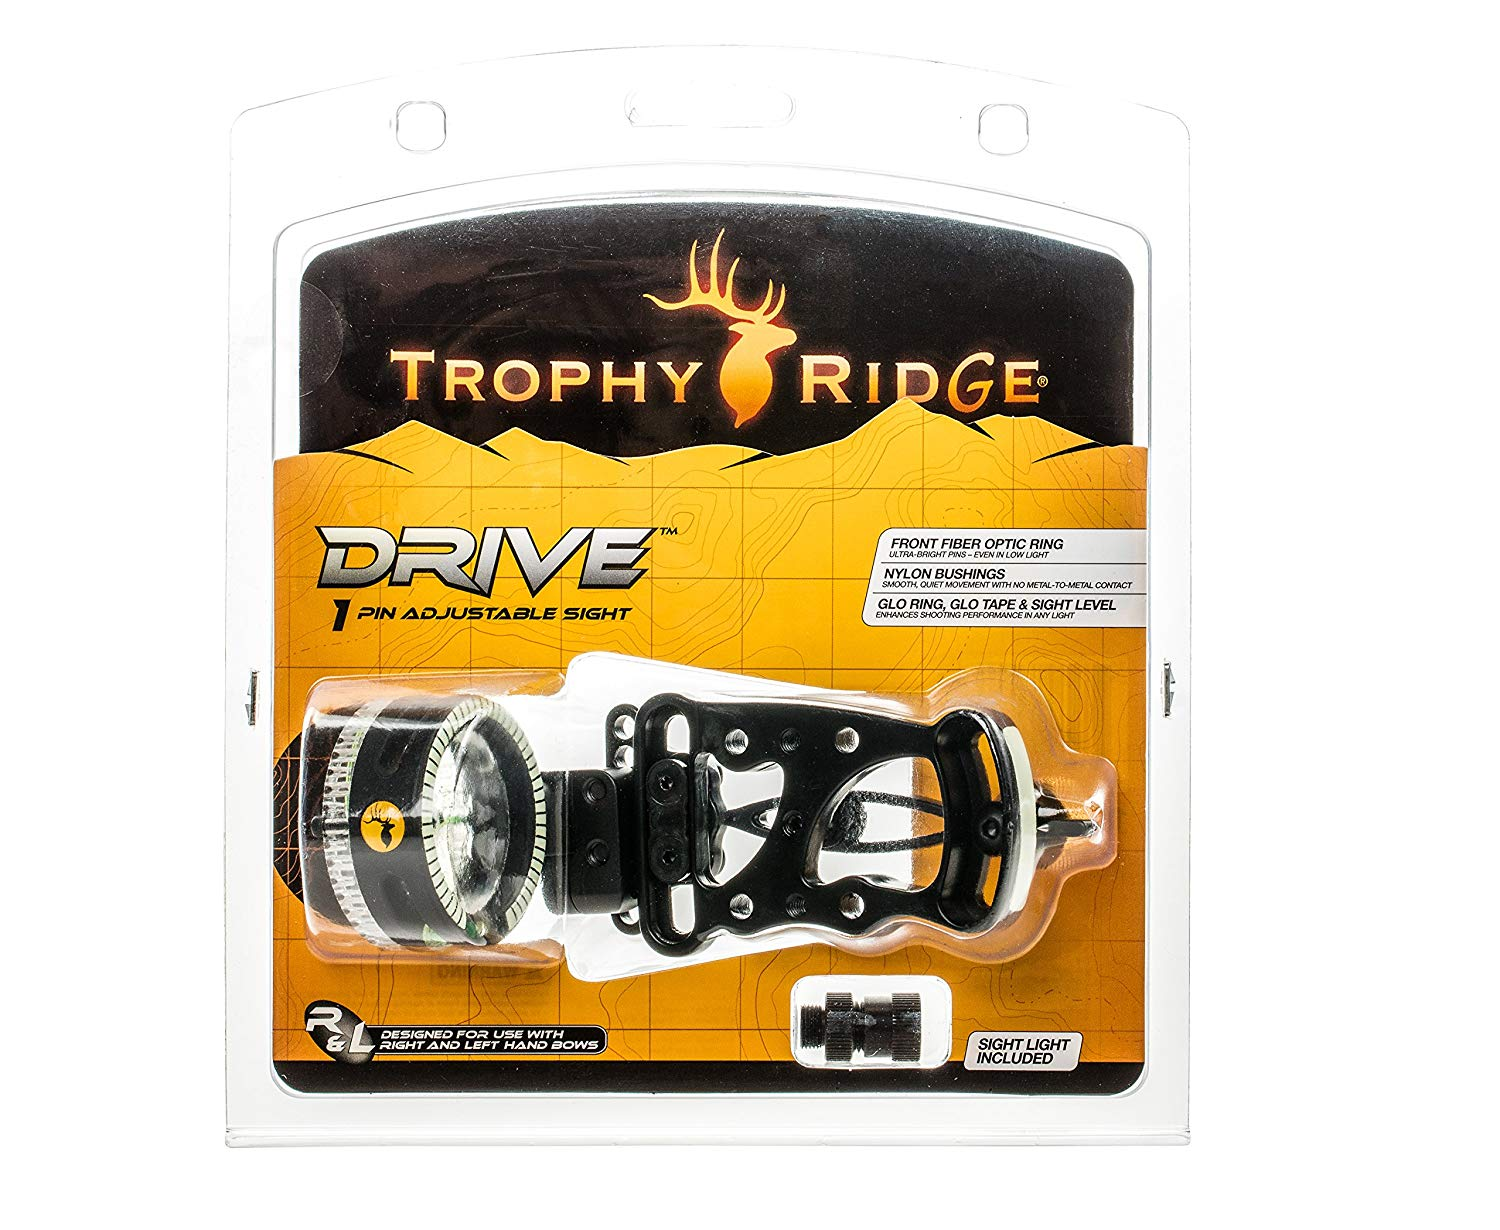 Trophy Ridge Drive Slider Bow Sight